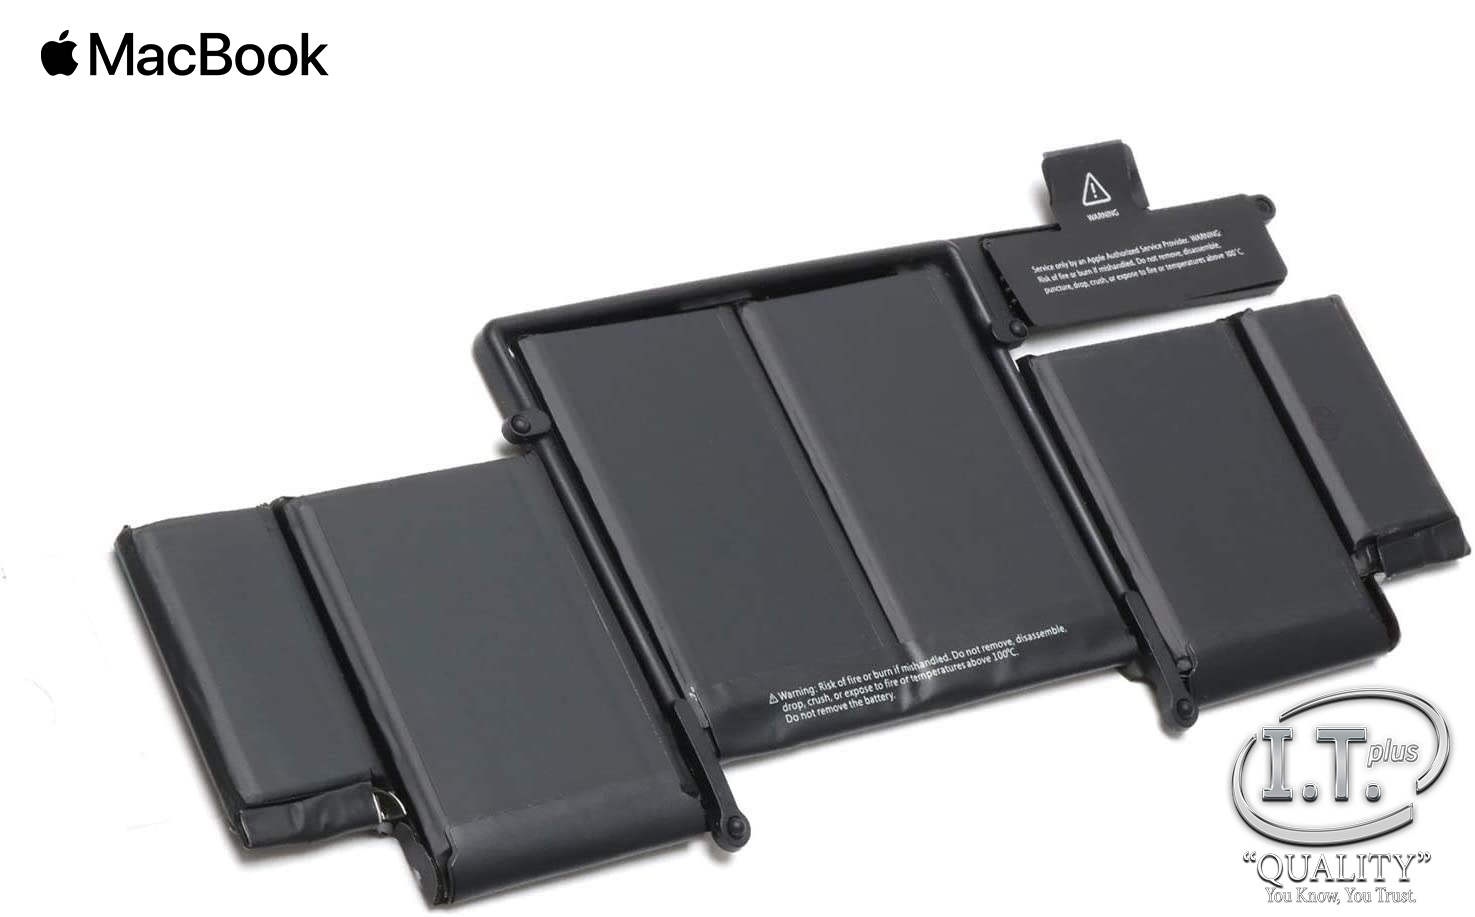 A1582 Laptop Battery Replacement for 2015 MacBook Pro 13